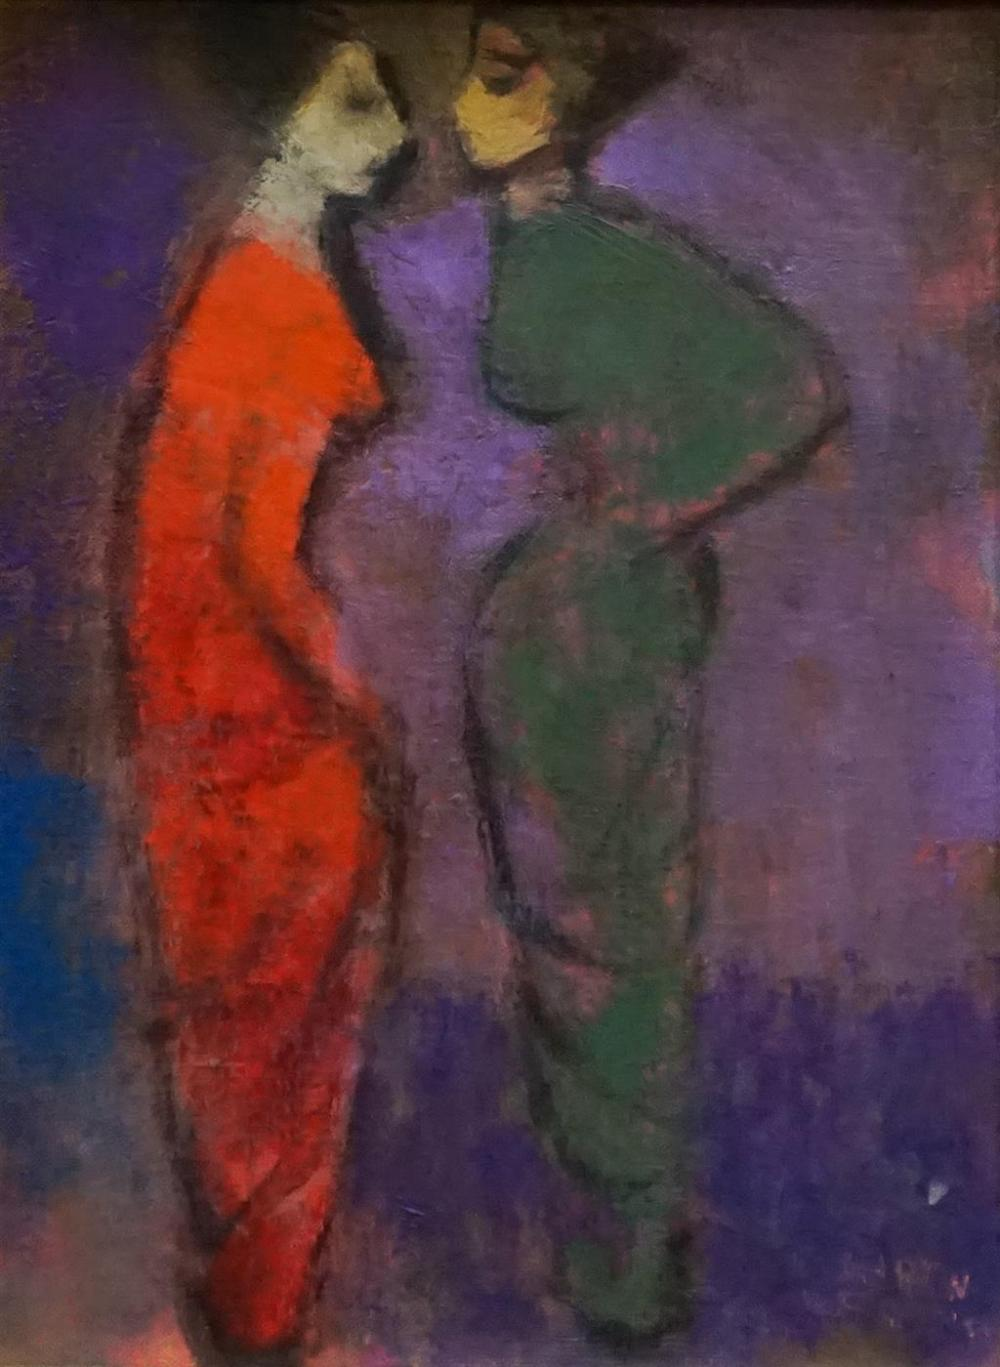 Martin Friedman (American 1896-1981), Two Figures, Oil on Canvas, Framed, 18 x 15 in